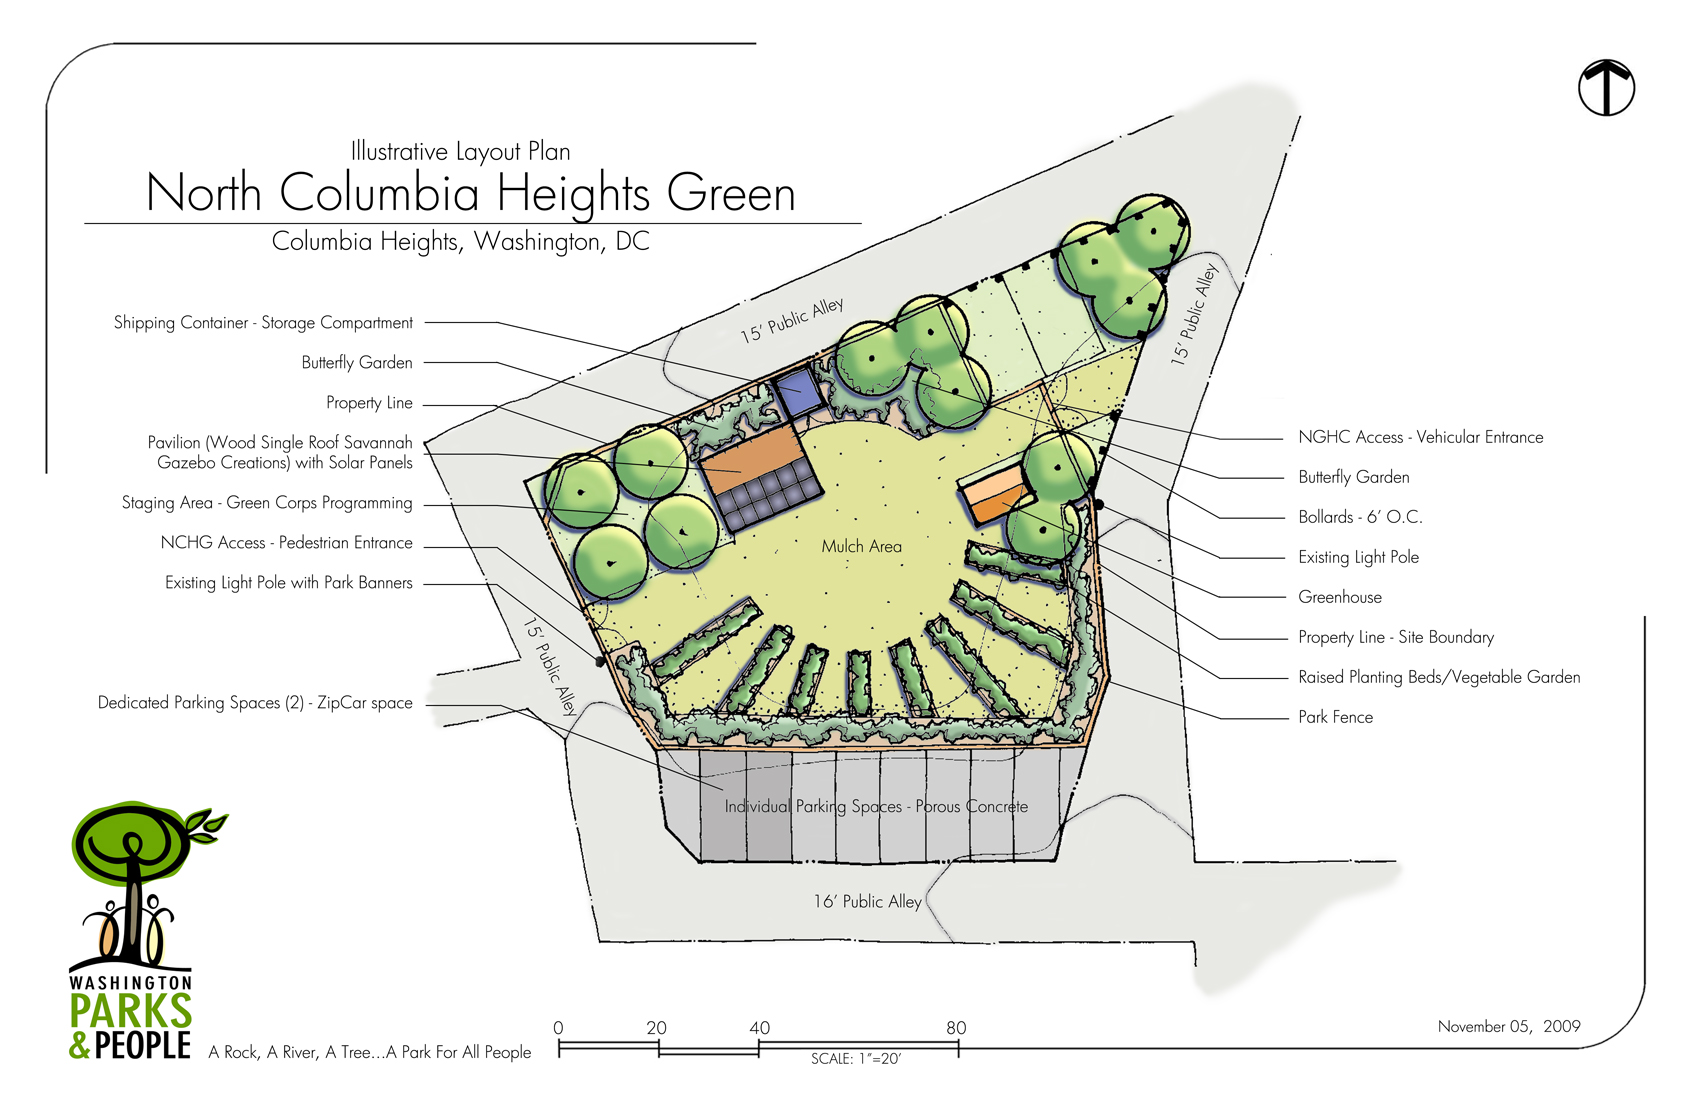 North Columbia Heights Green Update